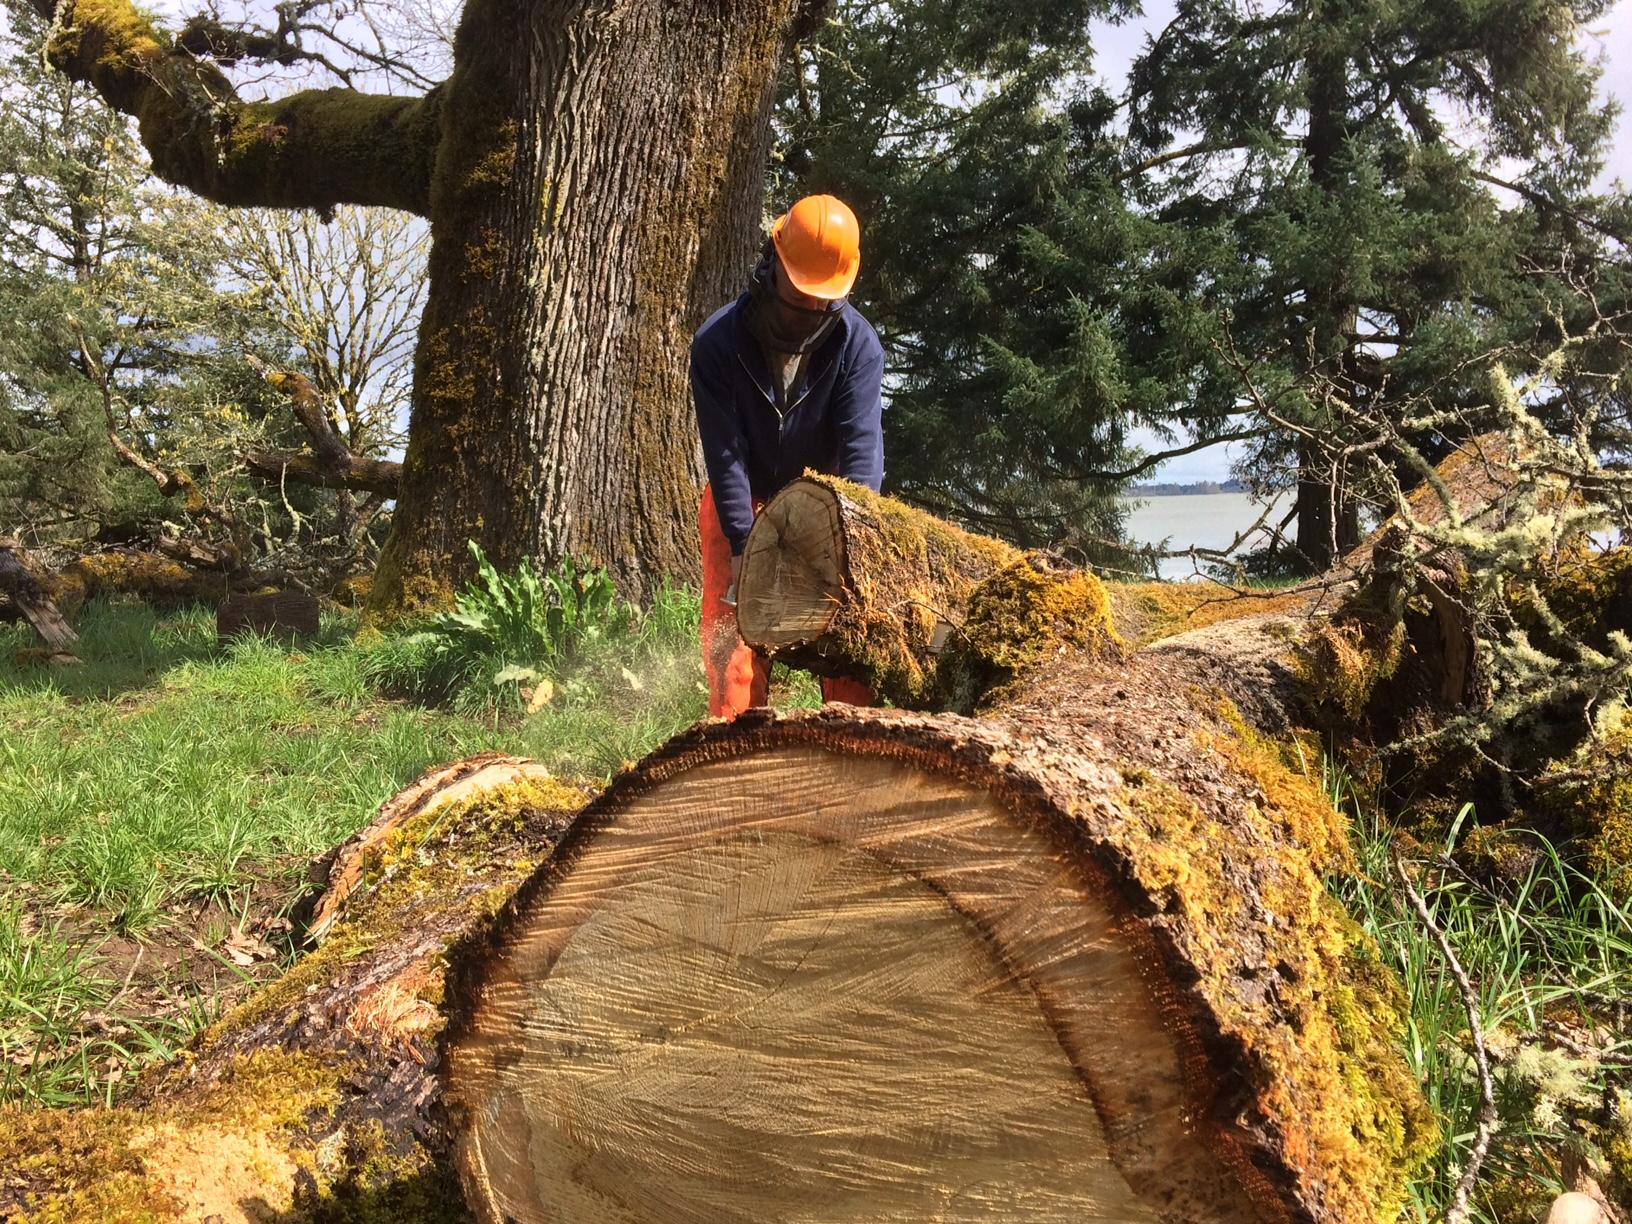 The Ellmaker Oak in Zumwalt Park is at least 350 years old. The December 2016 ice storm destroyed about 50 percent of the tree's structure, but the Friends of Zumwalt Park are working to help the tree live another century - or more. (SBG)